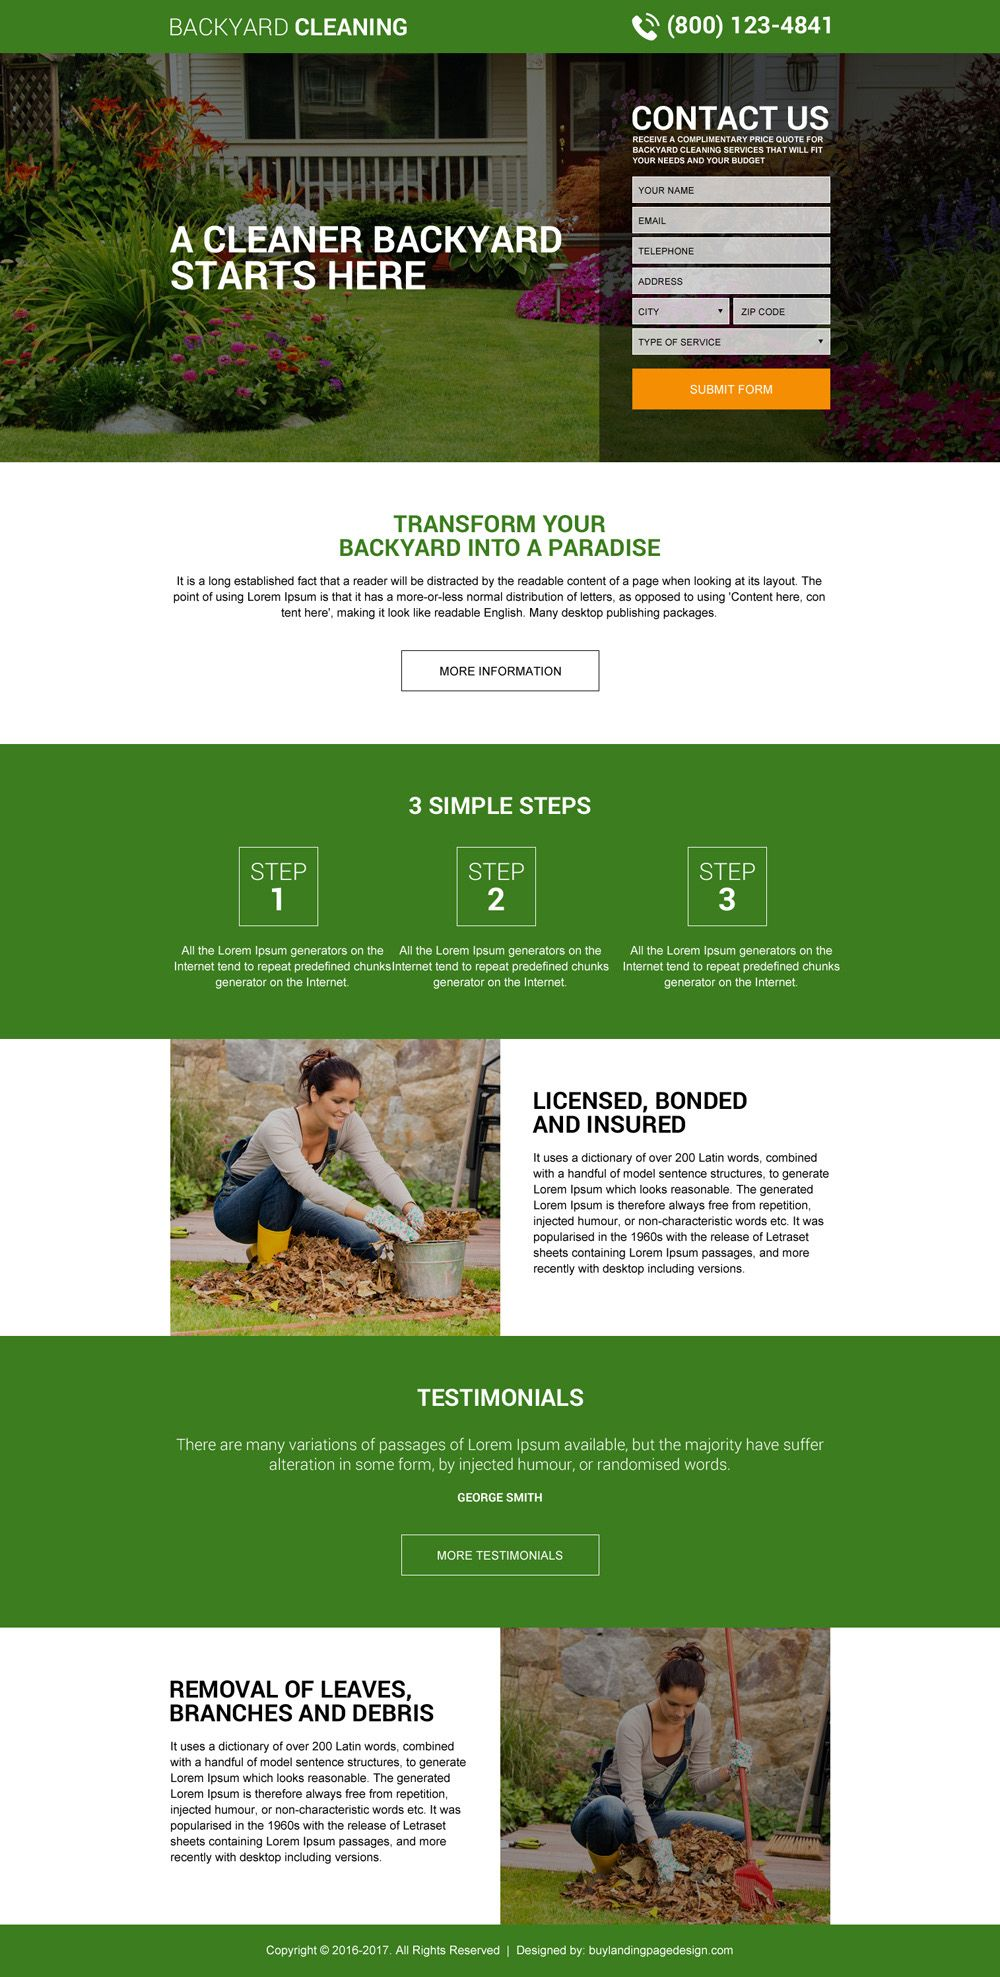 Incroyable Backyard Cleaning Service Lead Gen Landing Page Design